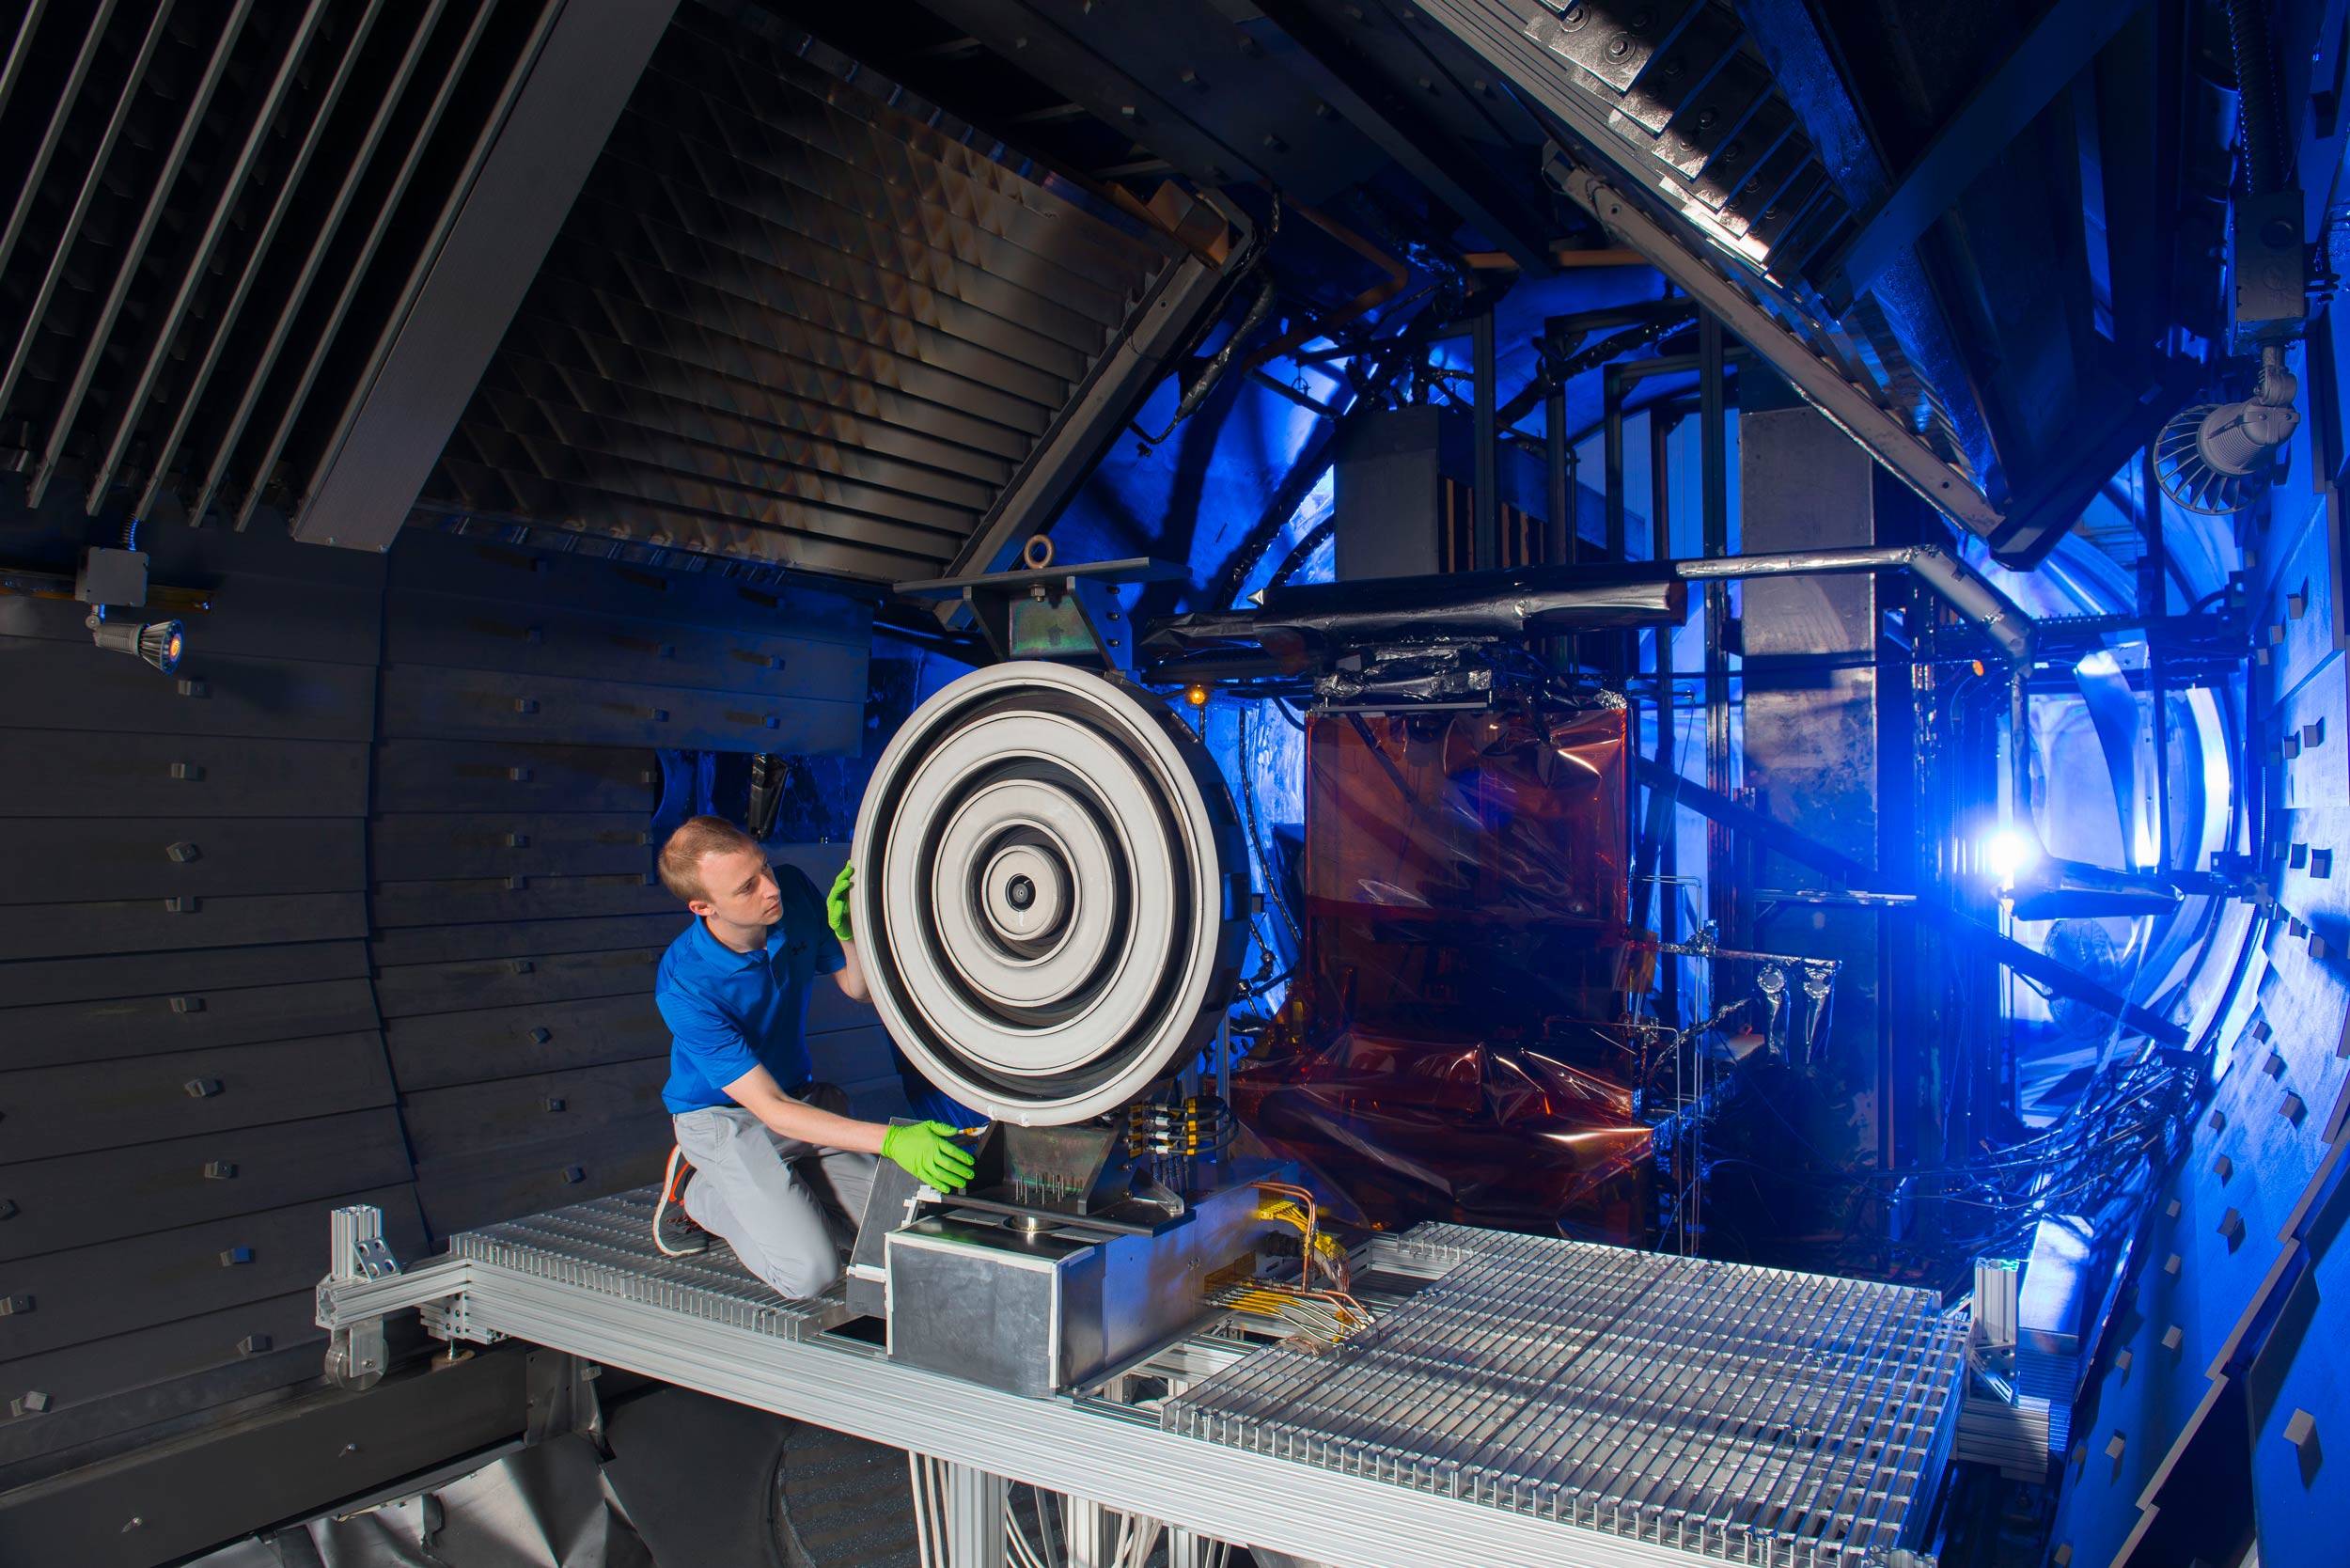 Scott Hall makes some final adjustments on the thruster before the test begins. Image credit: NASA